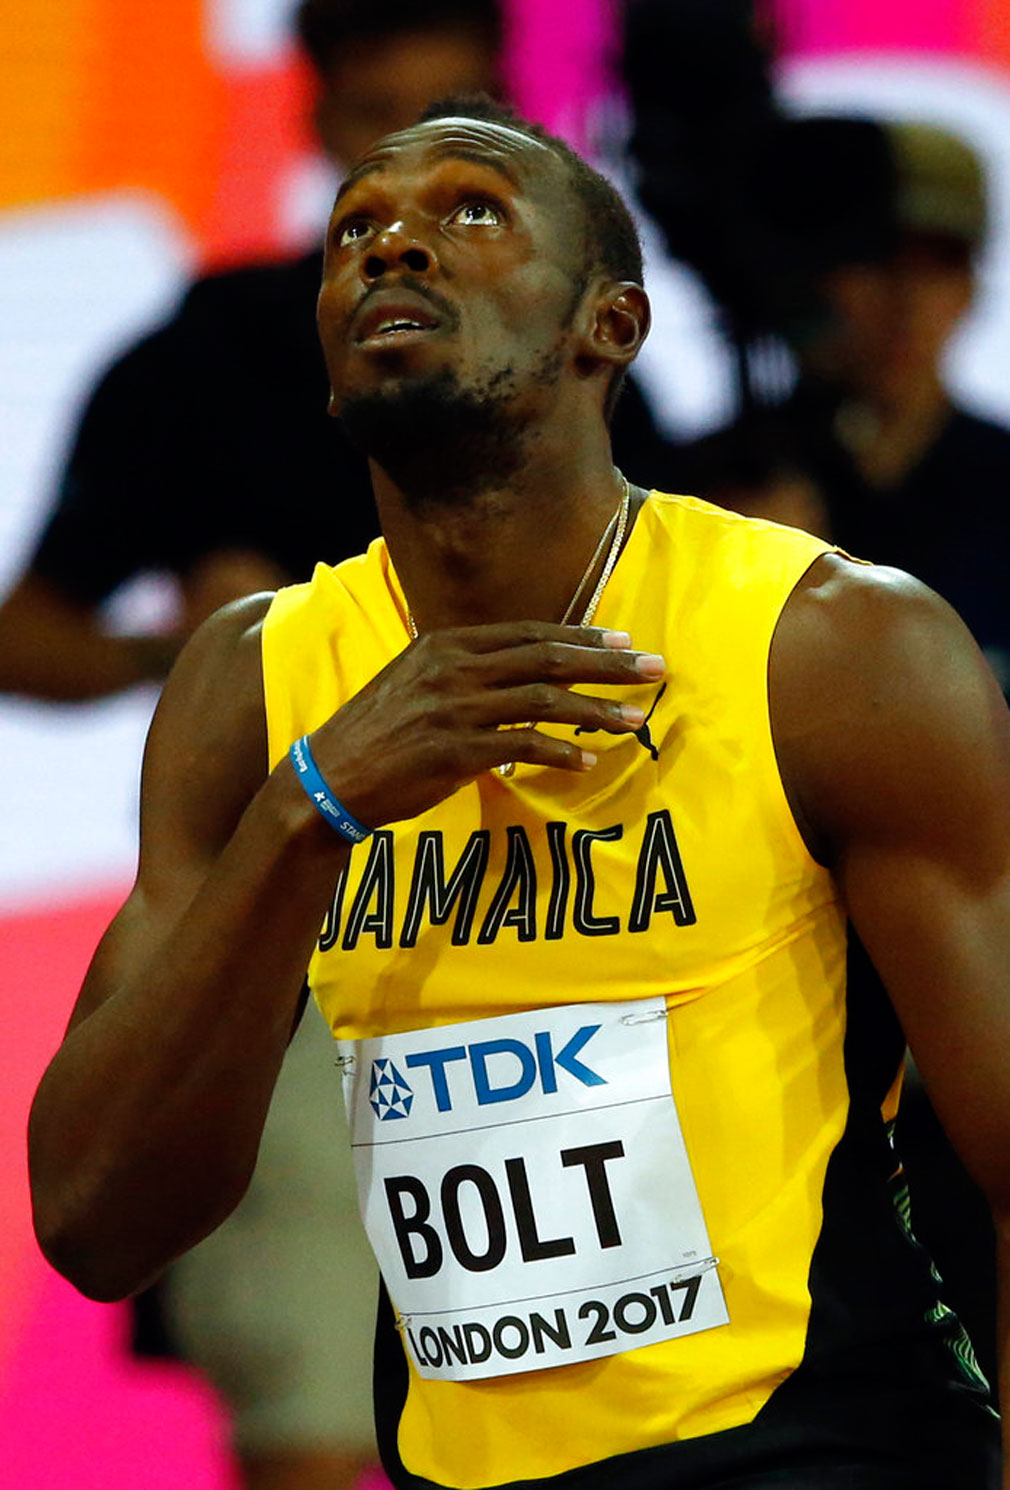 Jamaica's Usain Bolt looks on before a men's 100m heat during the World Athletics Championships in London.  (Image: AP Photo/Matthias Schrader)